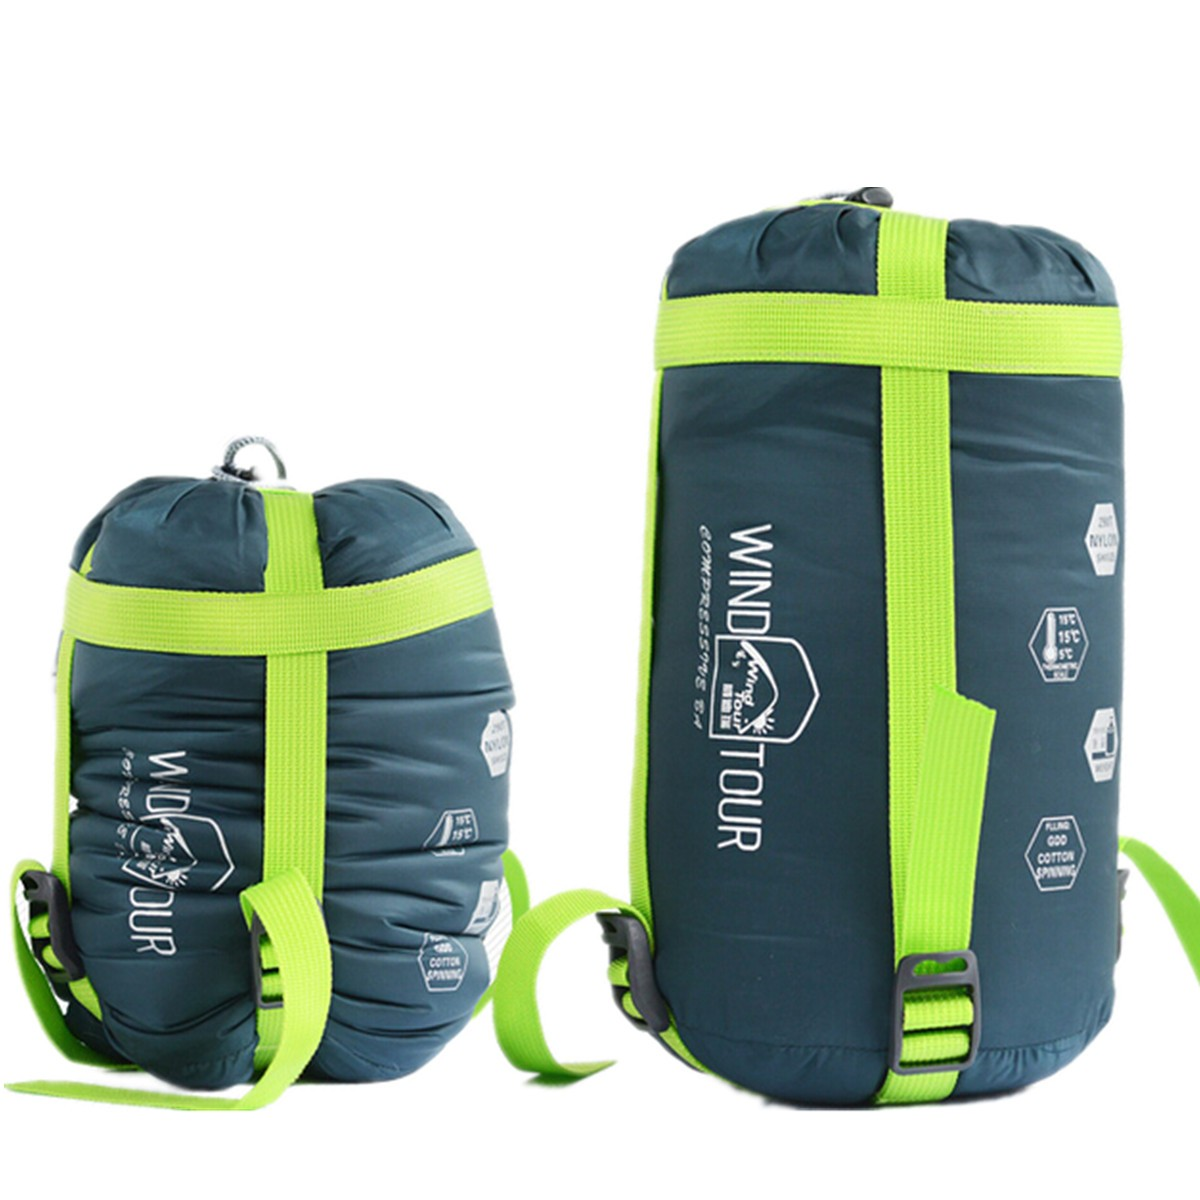 Hot Sale Ultralight Nylon Portable spring autum Outdoor Travel Camping Hiking Envelope Sleeping Bags with Compression